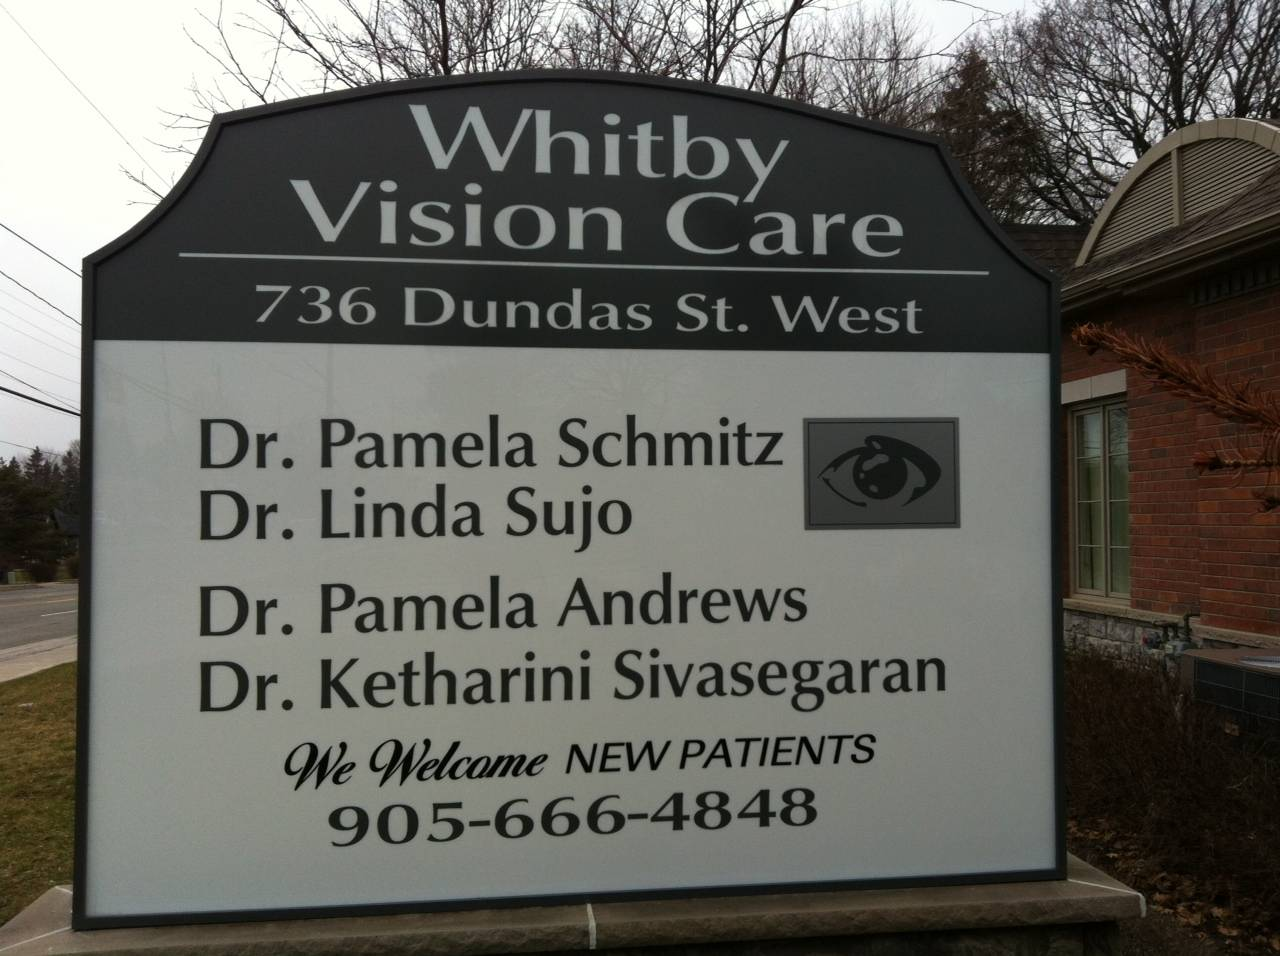 whitby_vision_care_sign